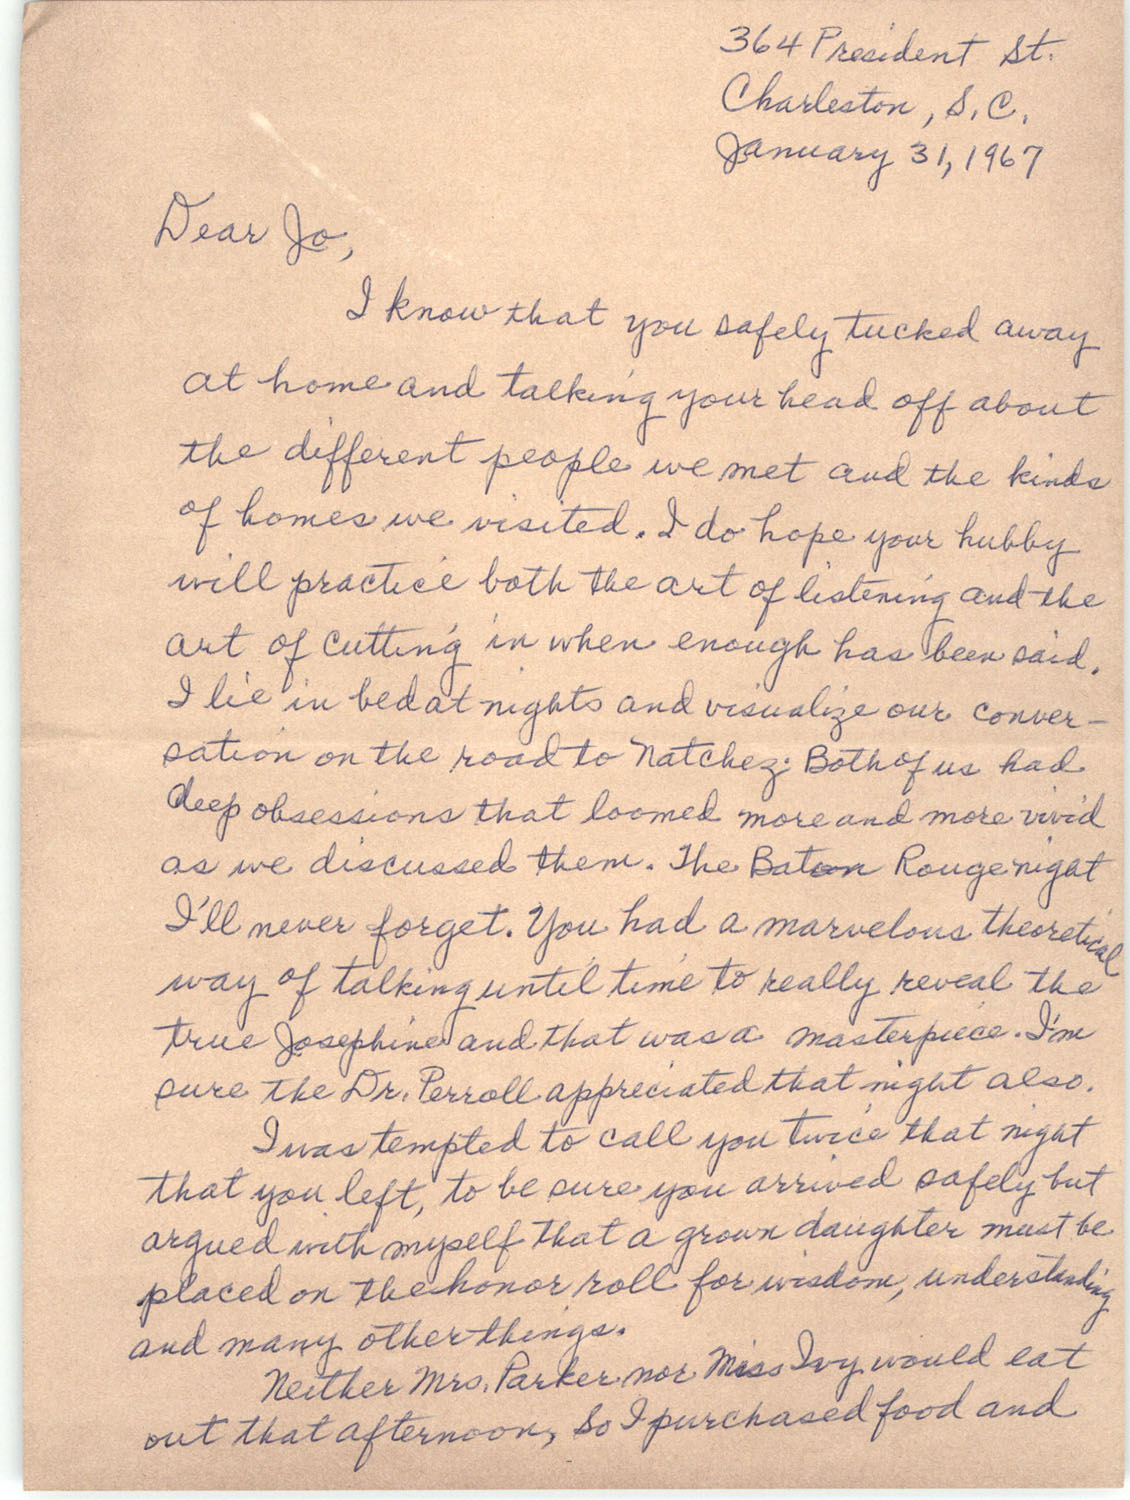 Letter from Septima P. Clark to Josephine Rider, January 31, 1967